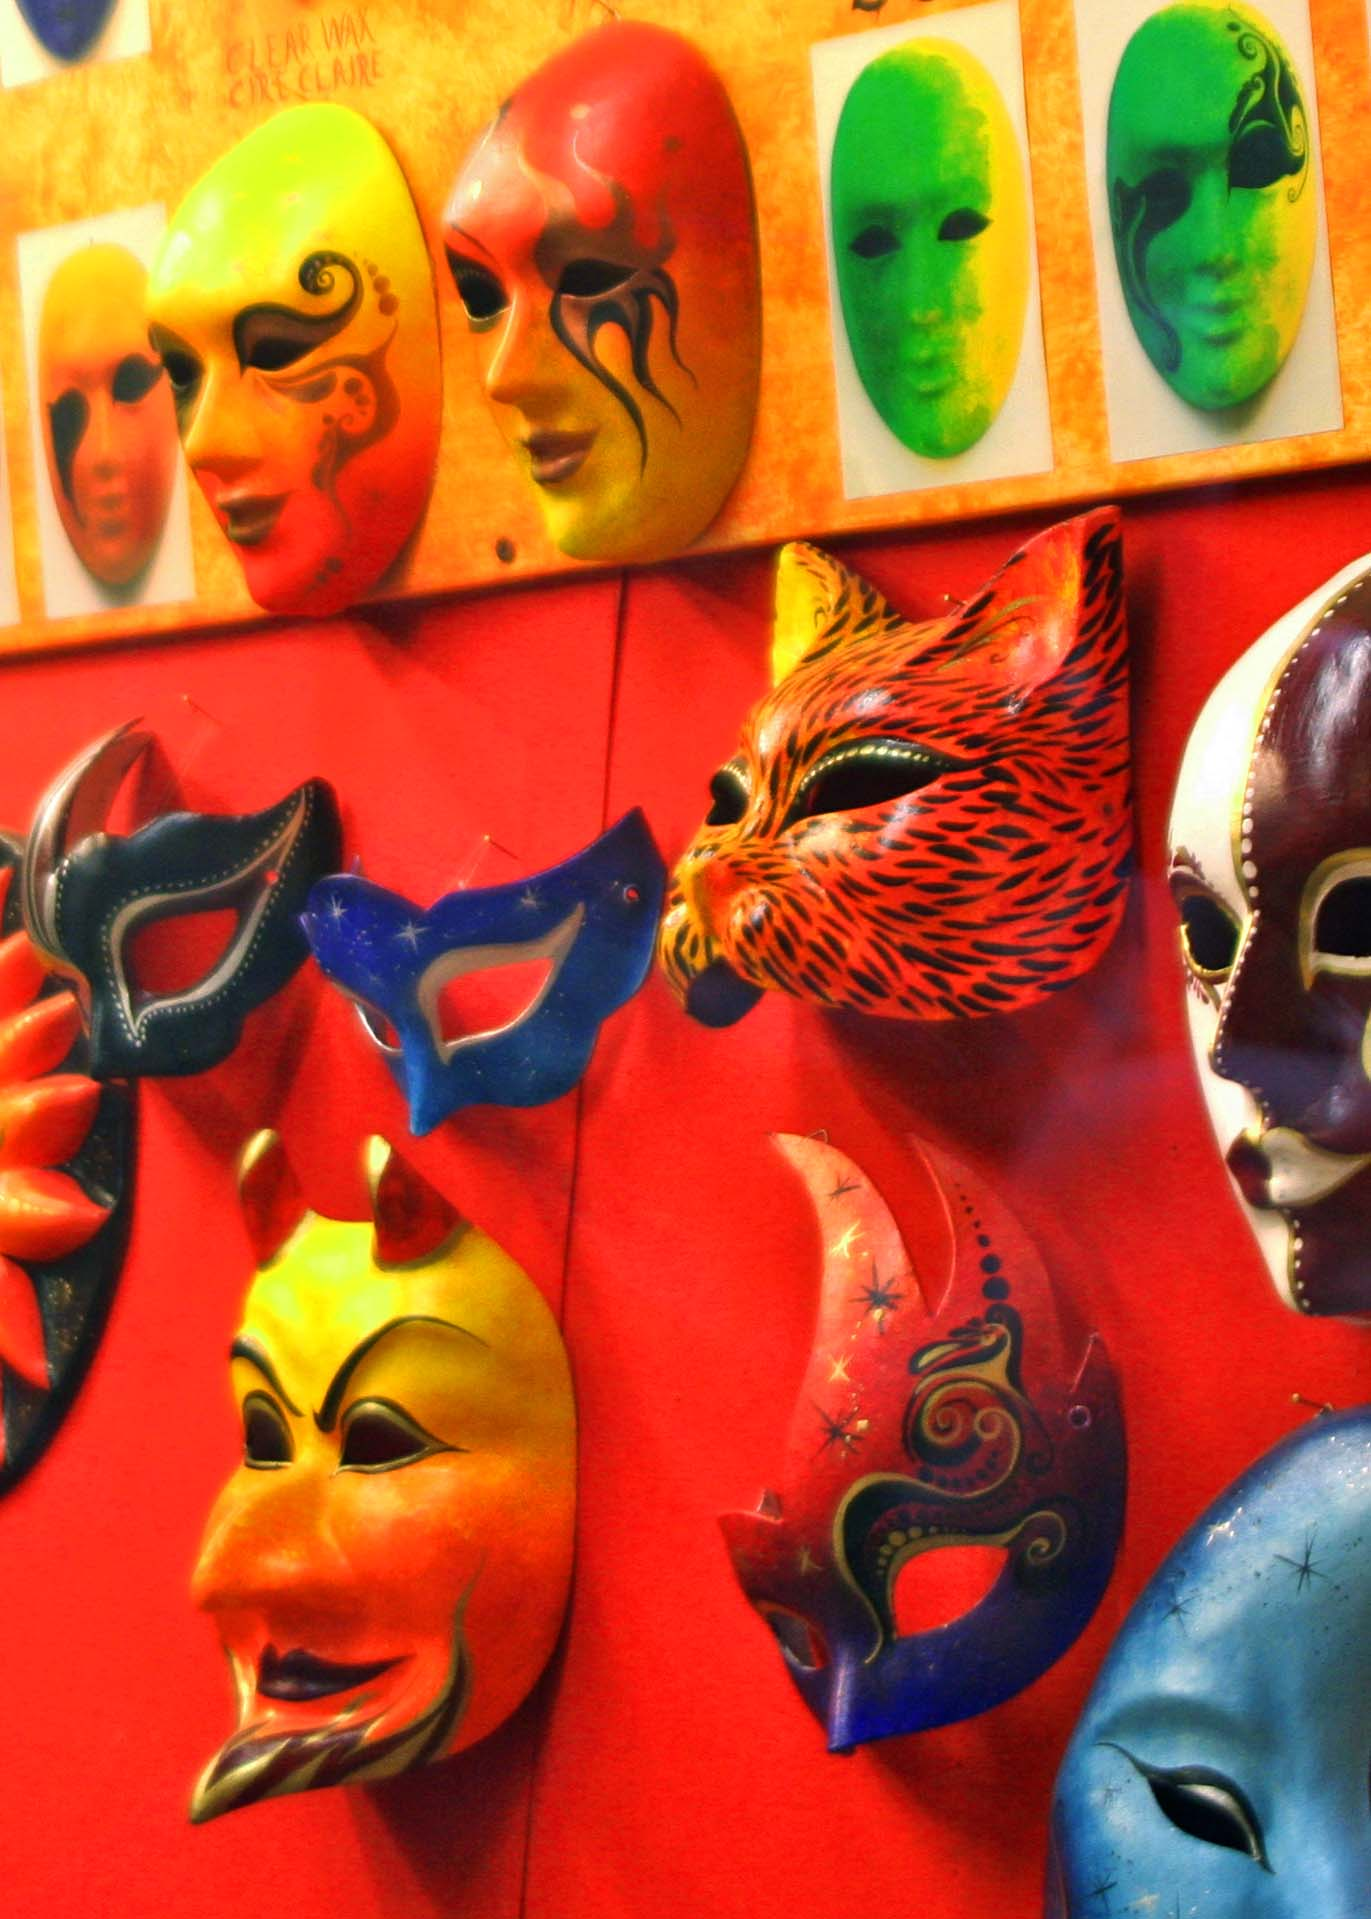 I like this window display of Venetian masks because of its variety.